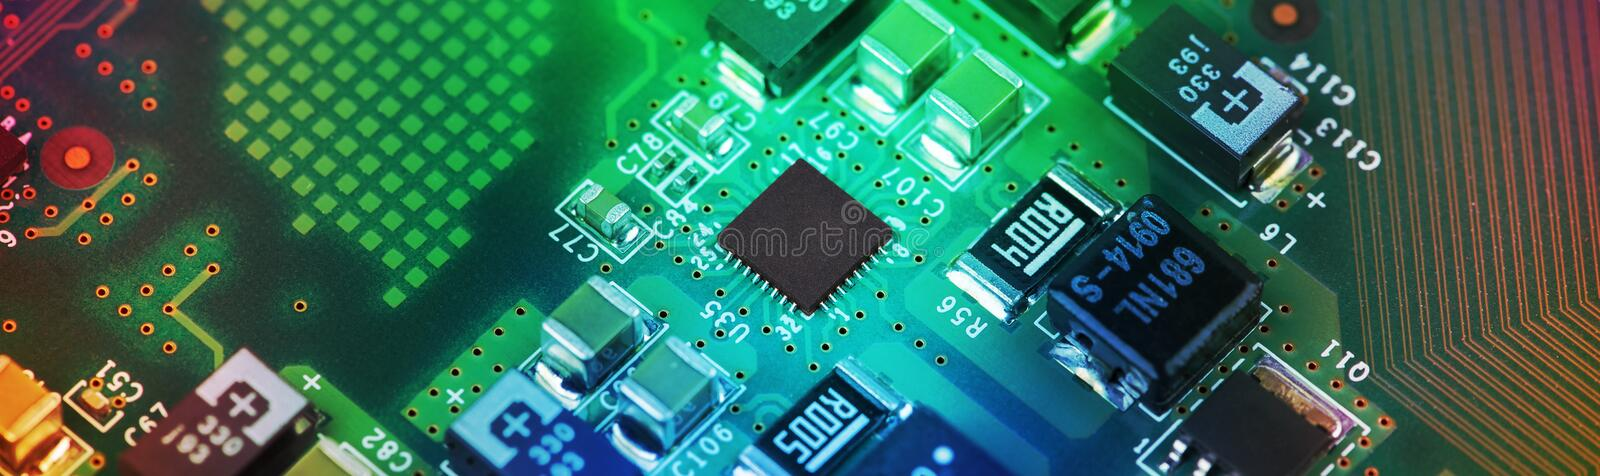 High Tech Circuit Board close up, macro. concept of information technology. Printed circuit board with components. close up, macro. concept of information royalty free stock photos